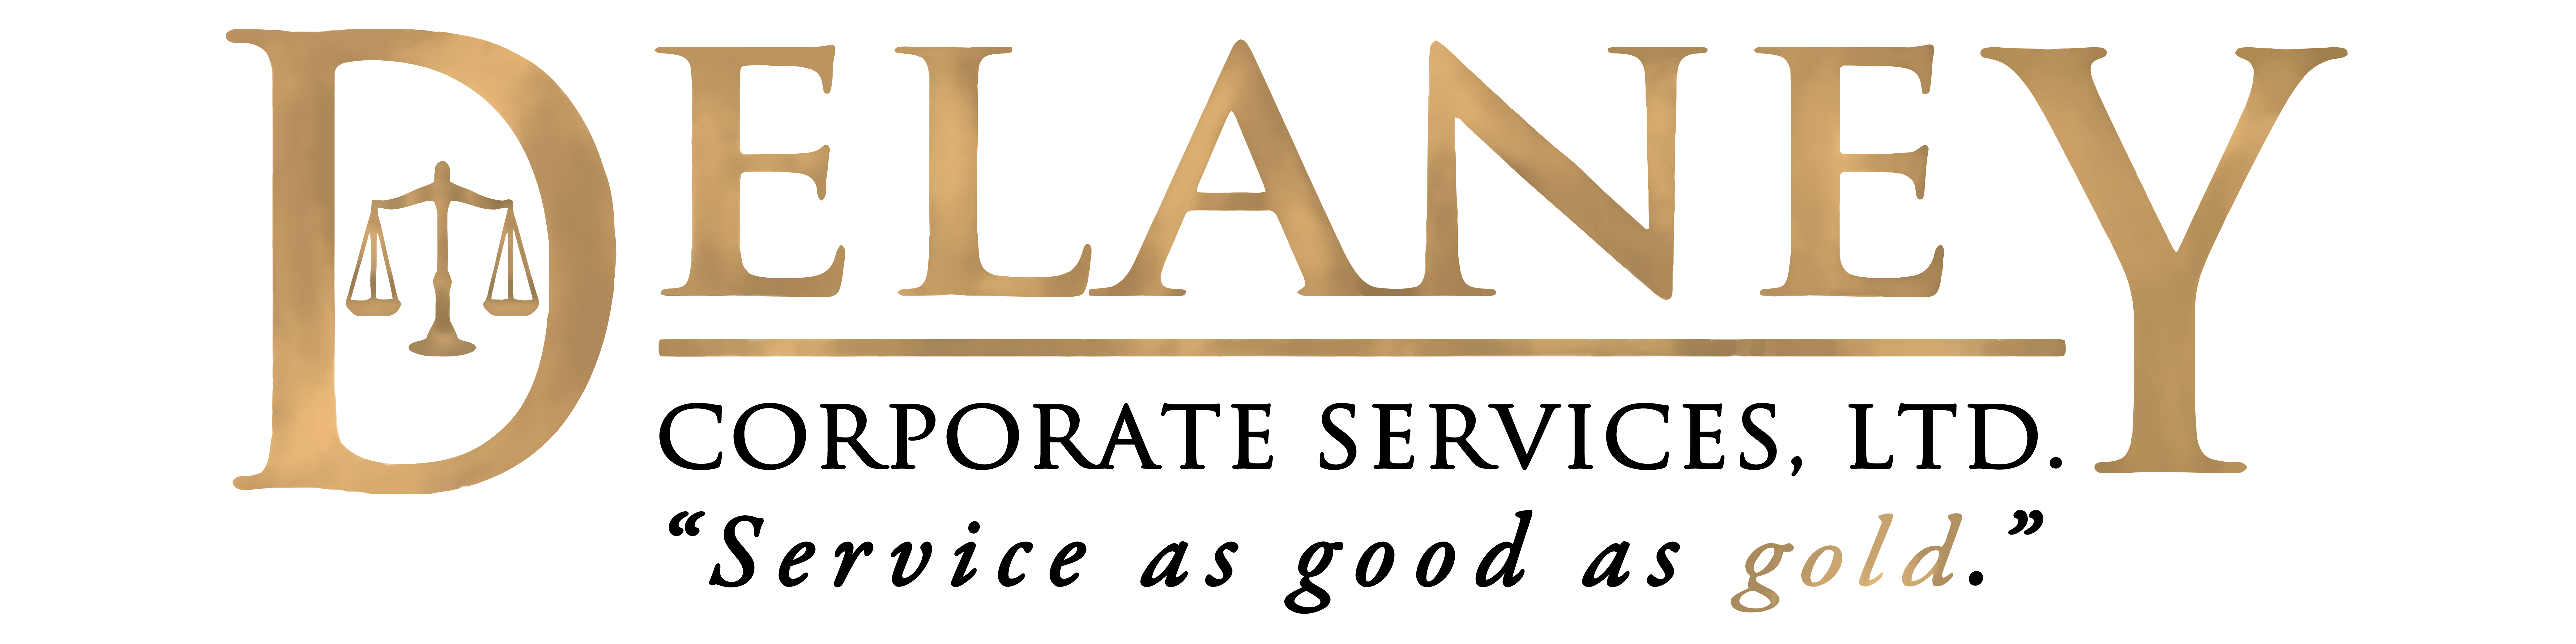 Delaney Corporate Services LTD. Logo